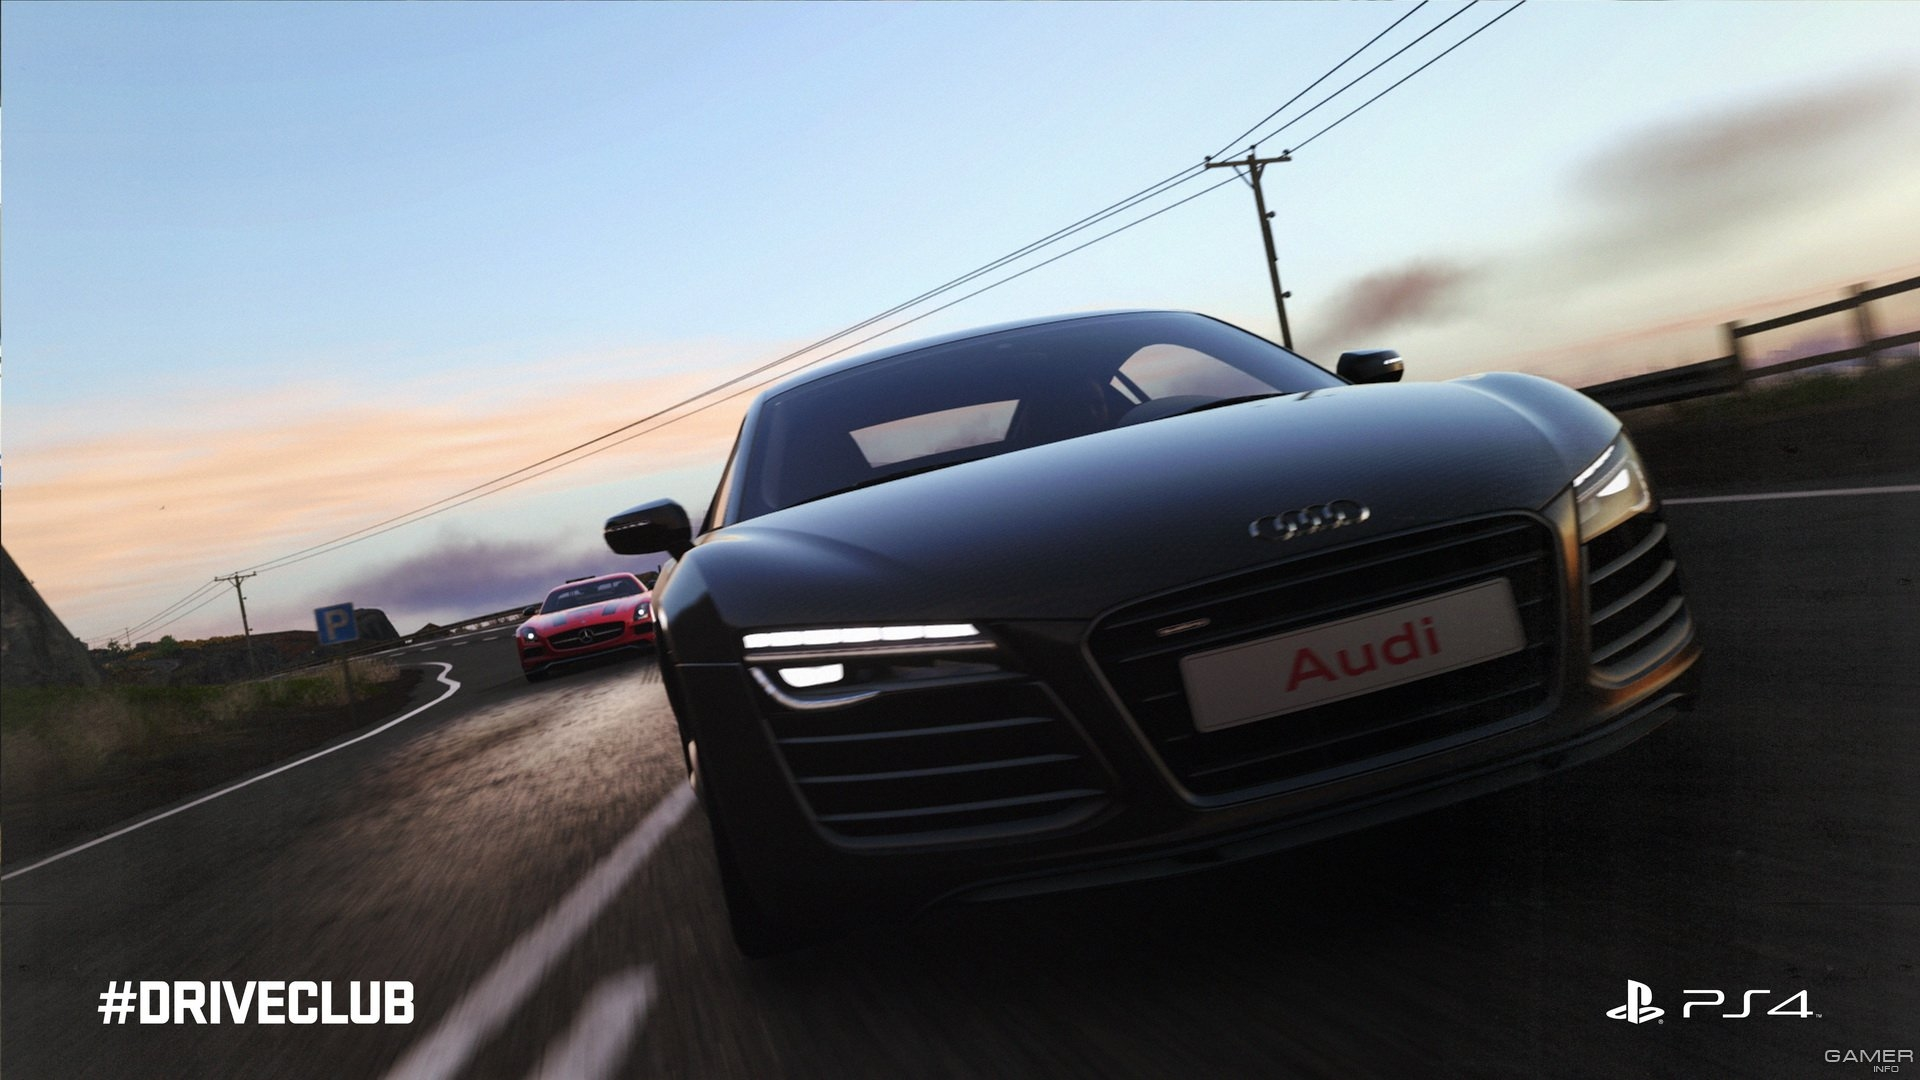 Audi R8 Coupe DriveClub